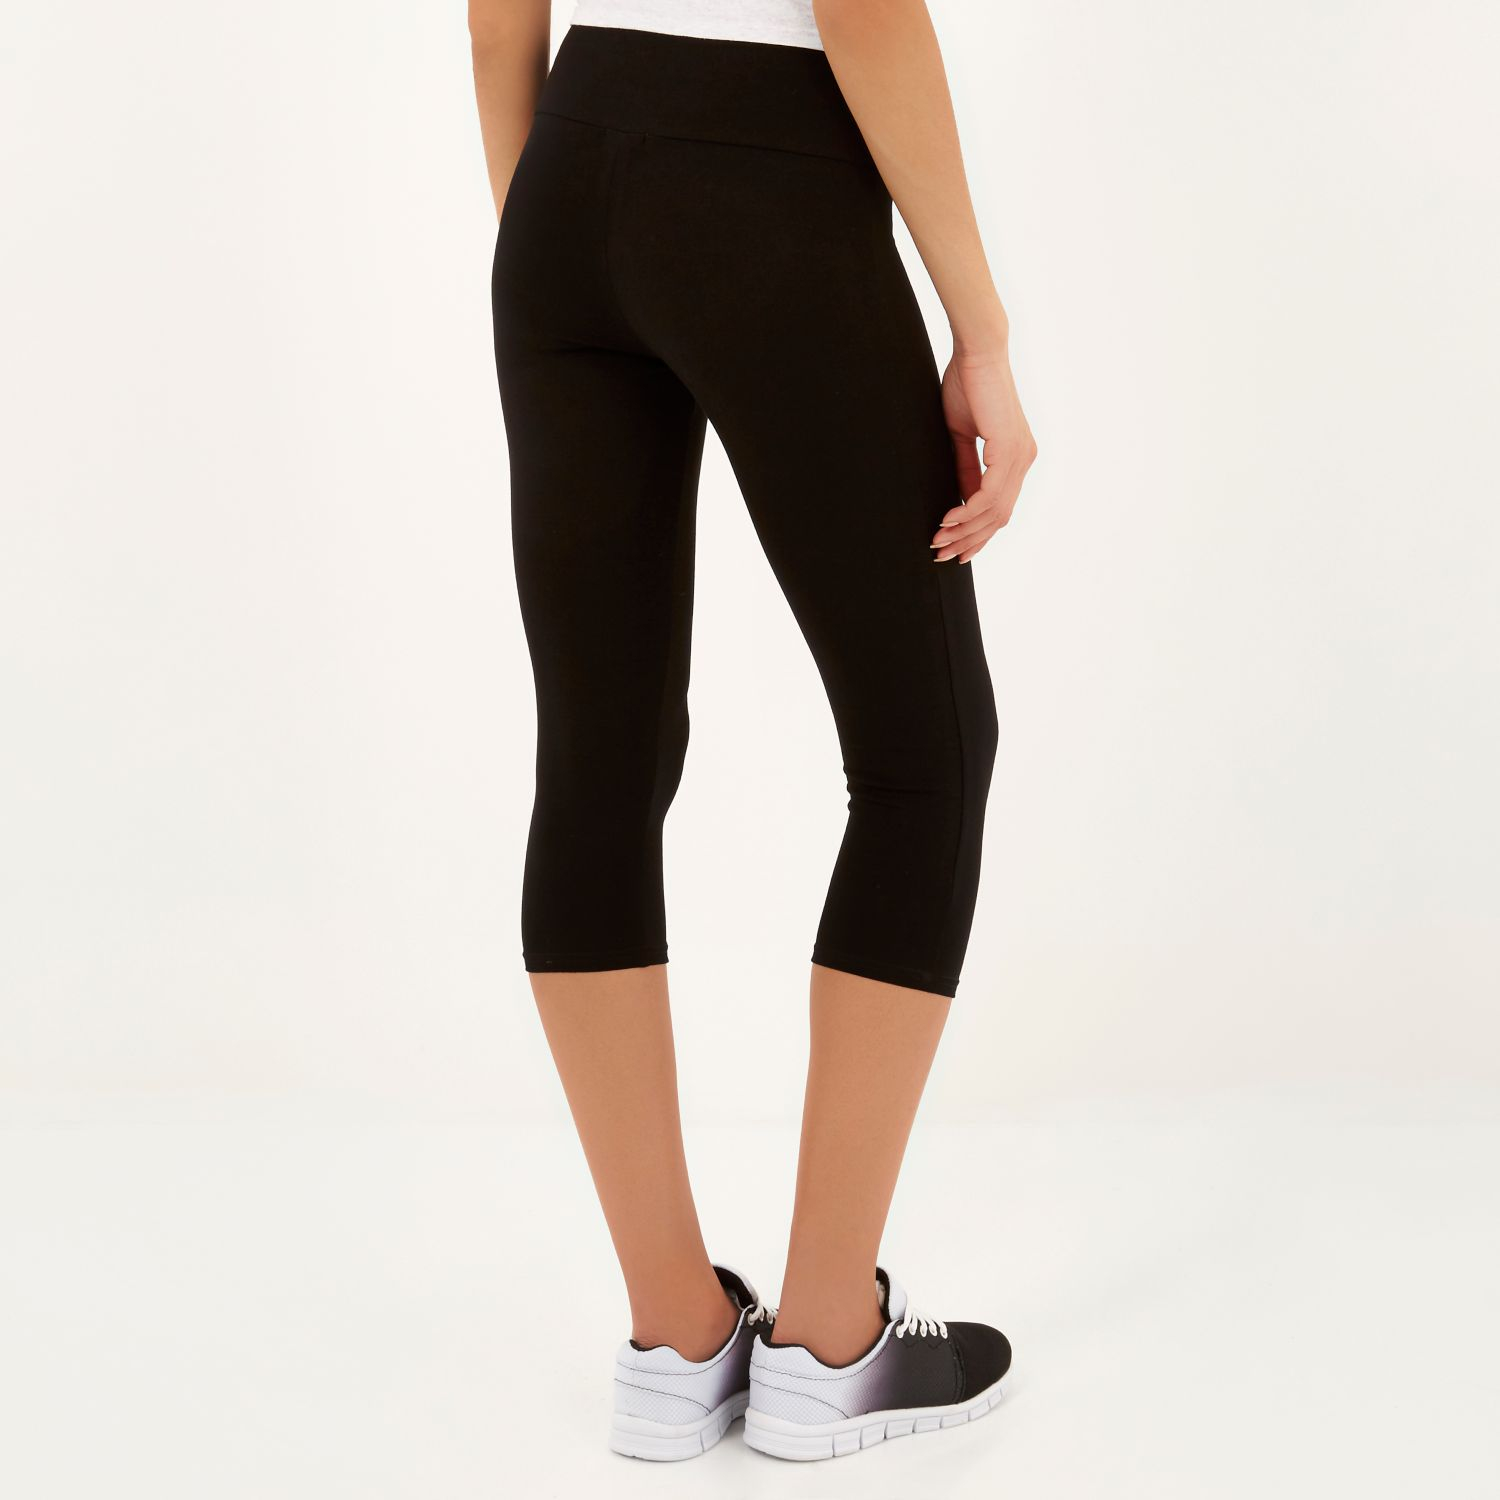 Find great deals on eBay for pedal pusher leggings. Shop with confidence.